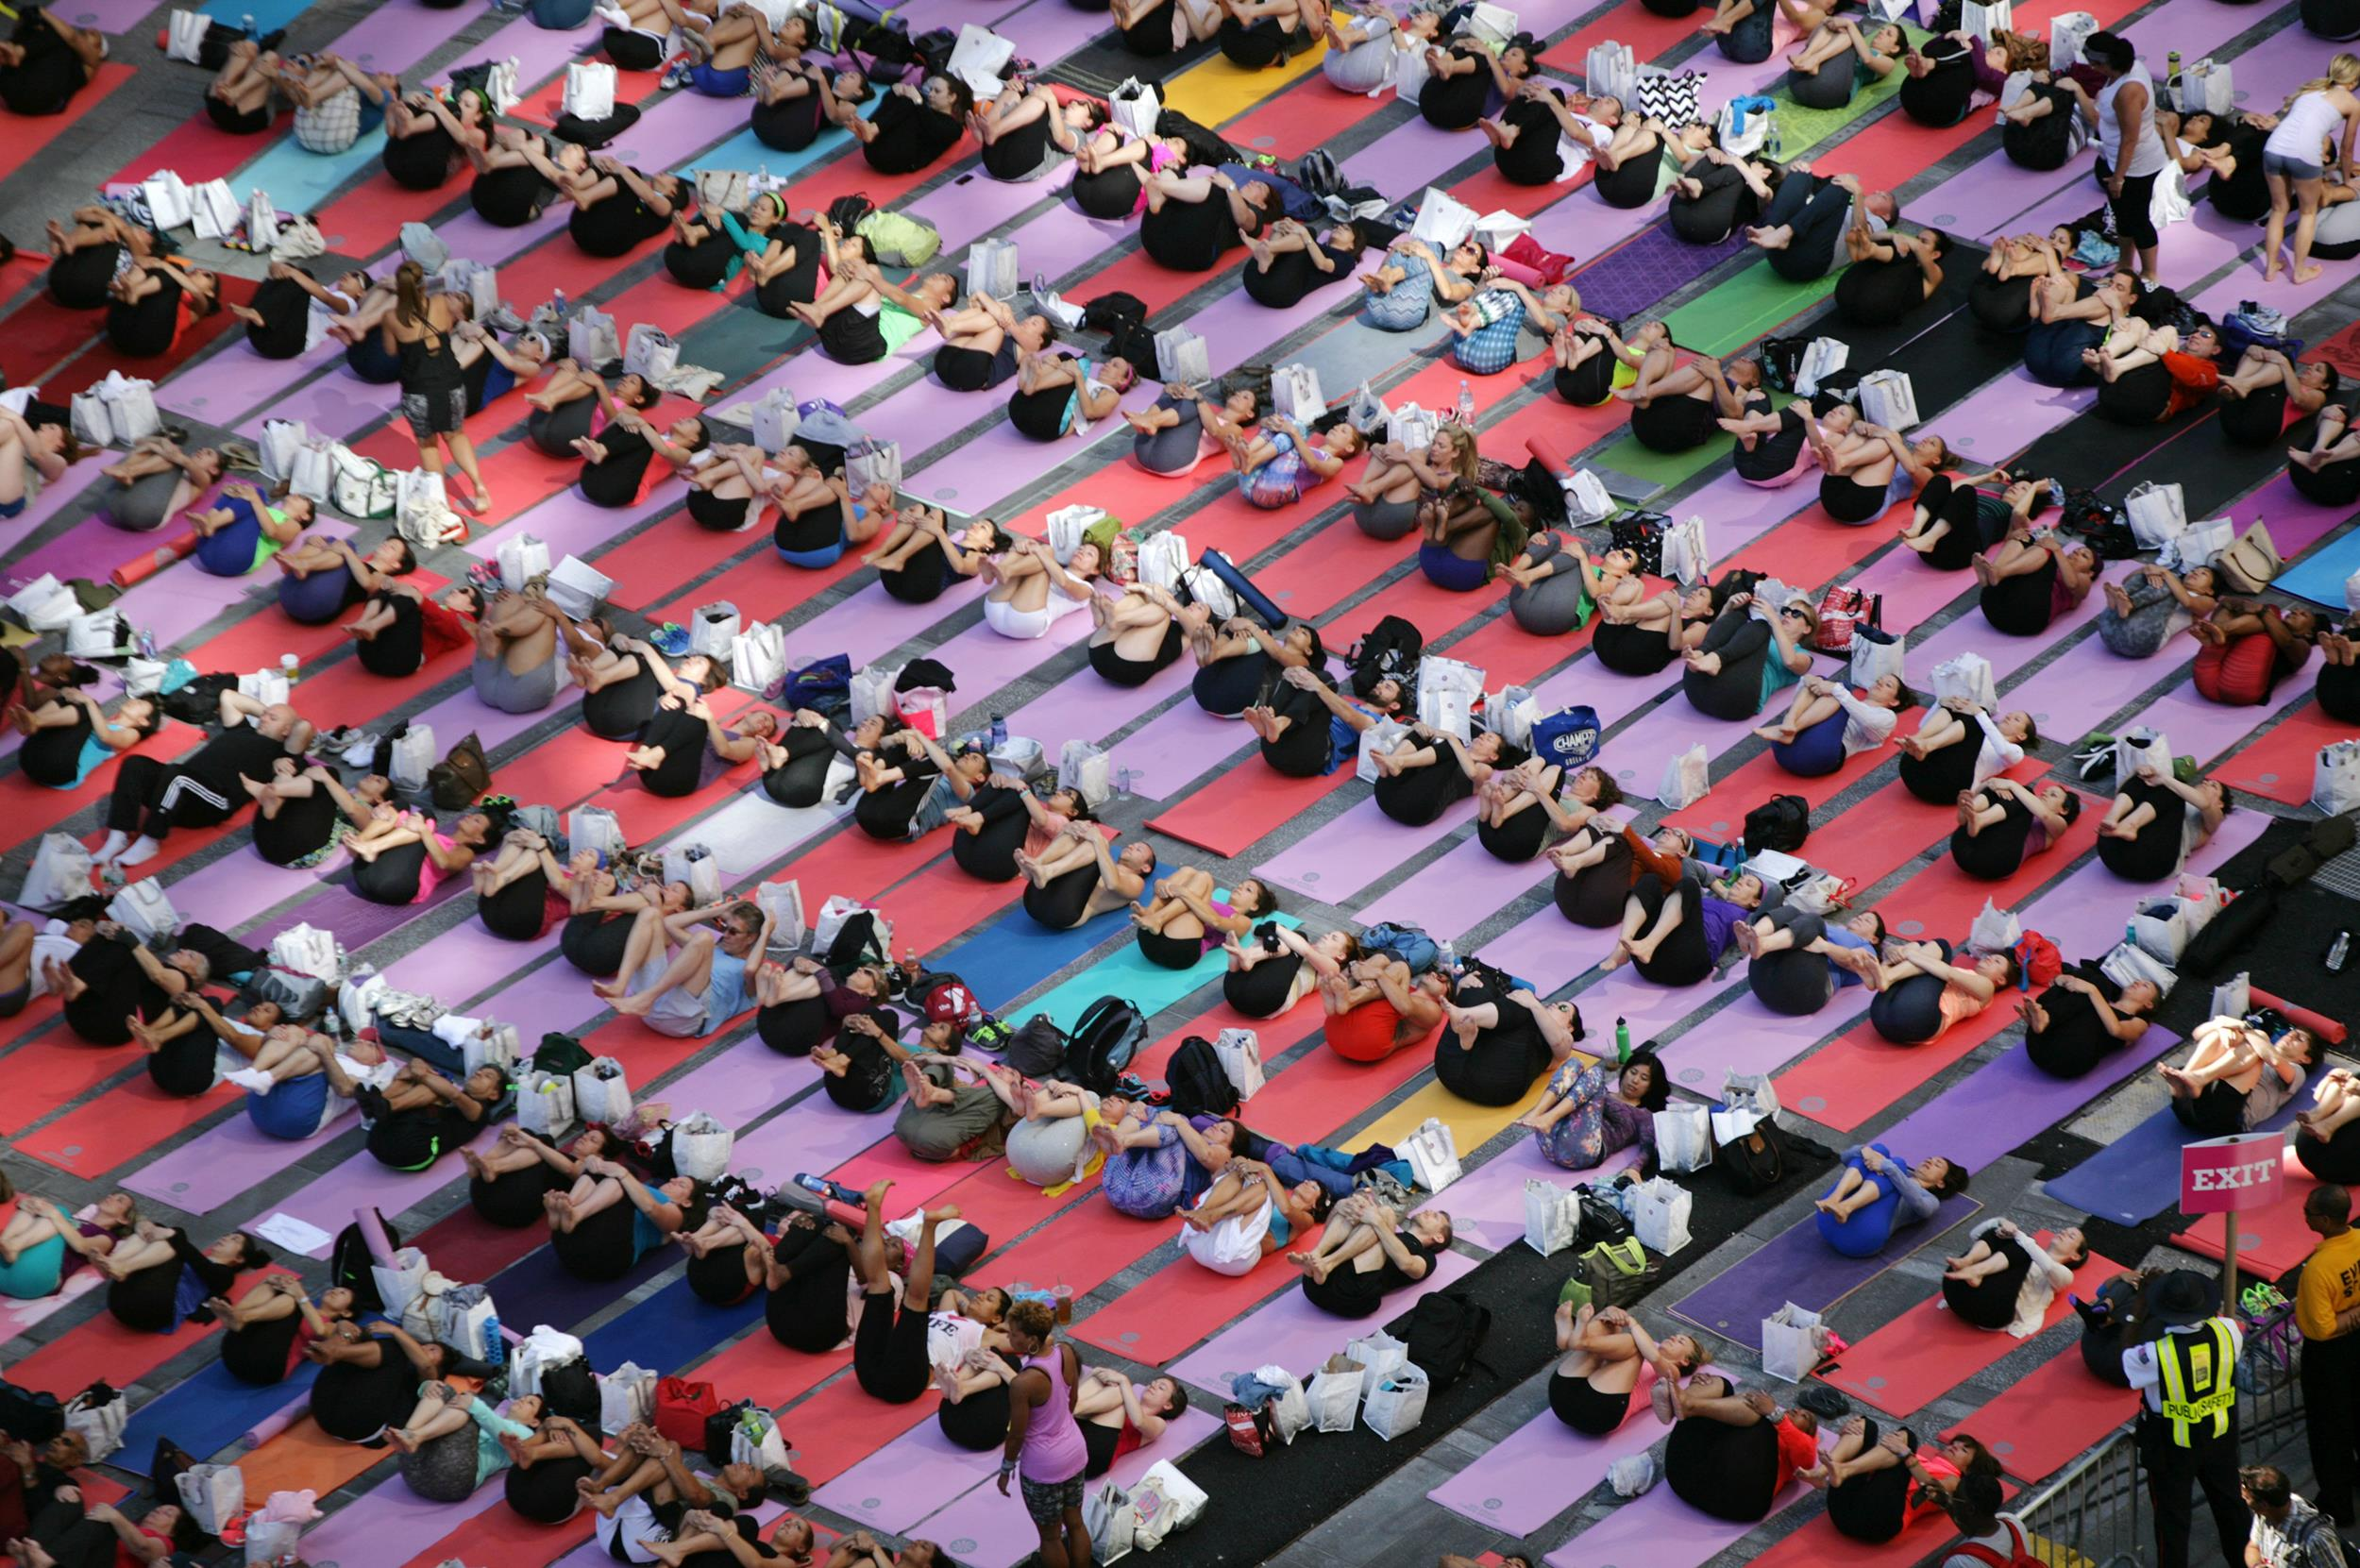 Image: Mass Yoga Classes In New York's Times Square Mark Summer Solstice